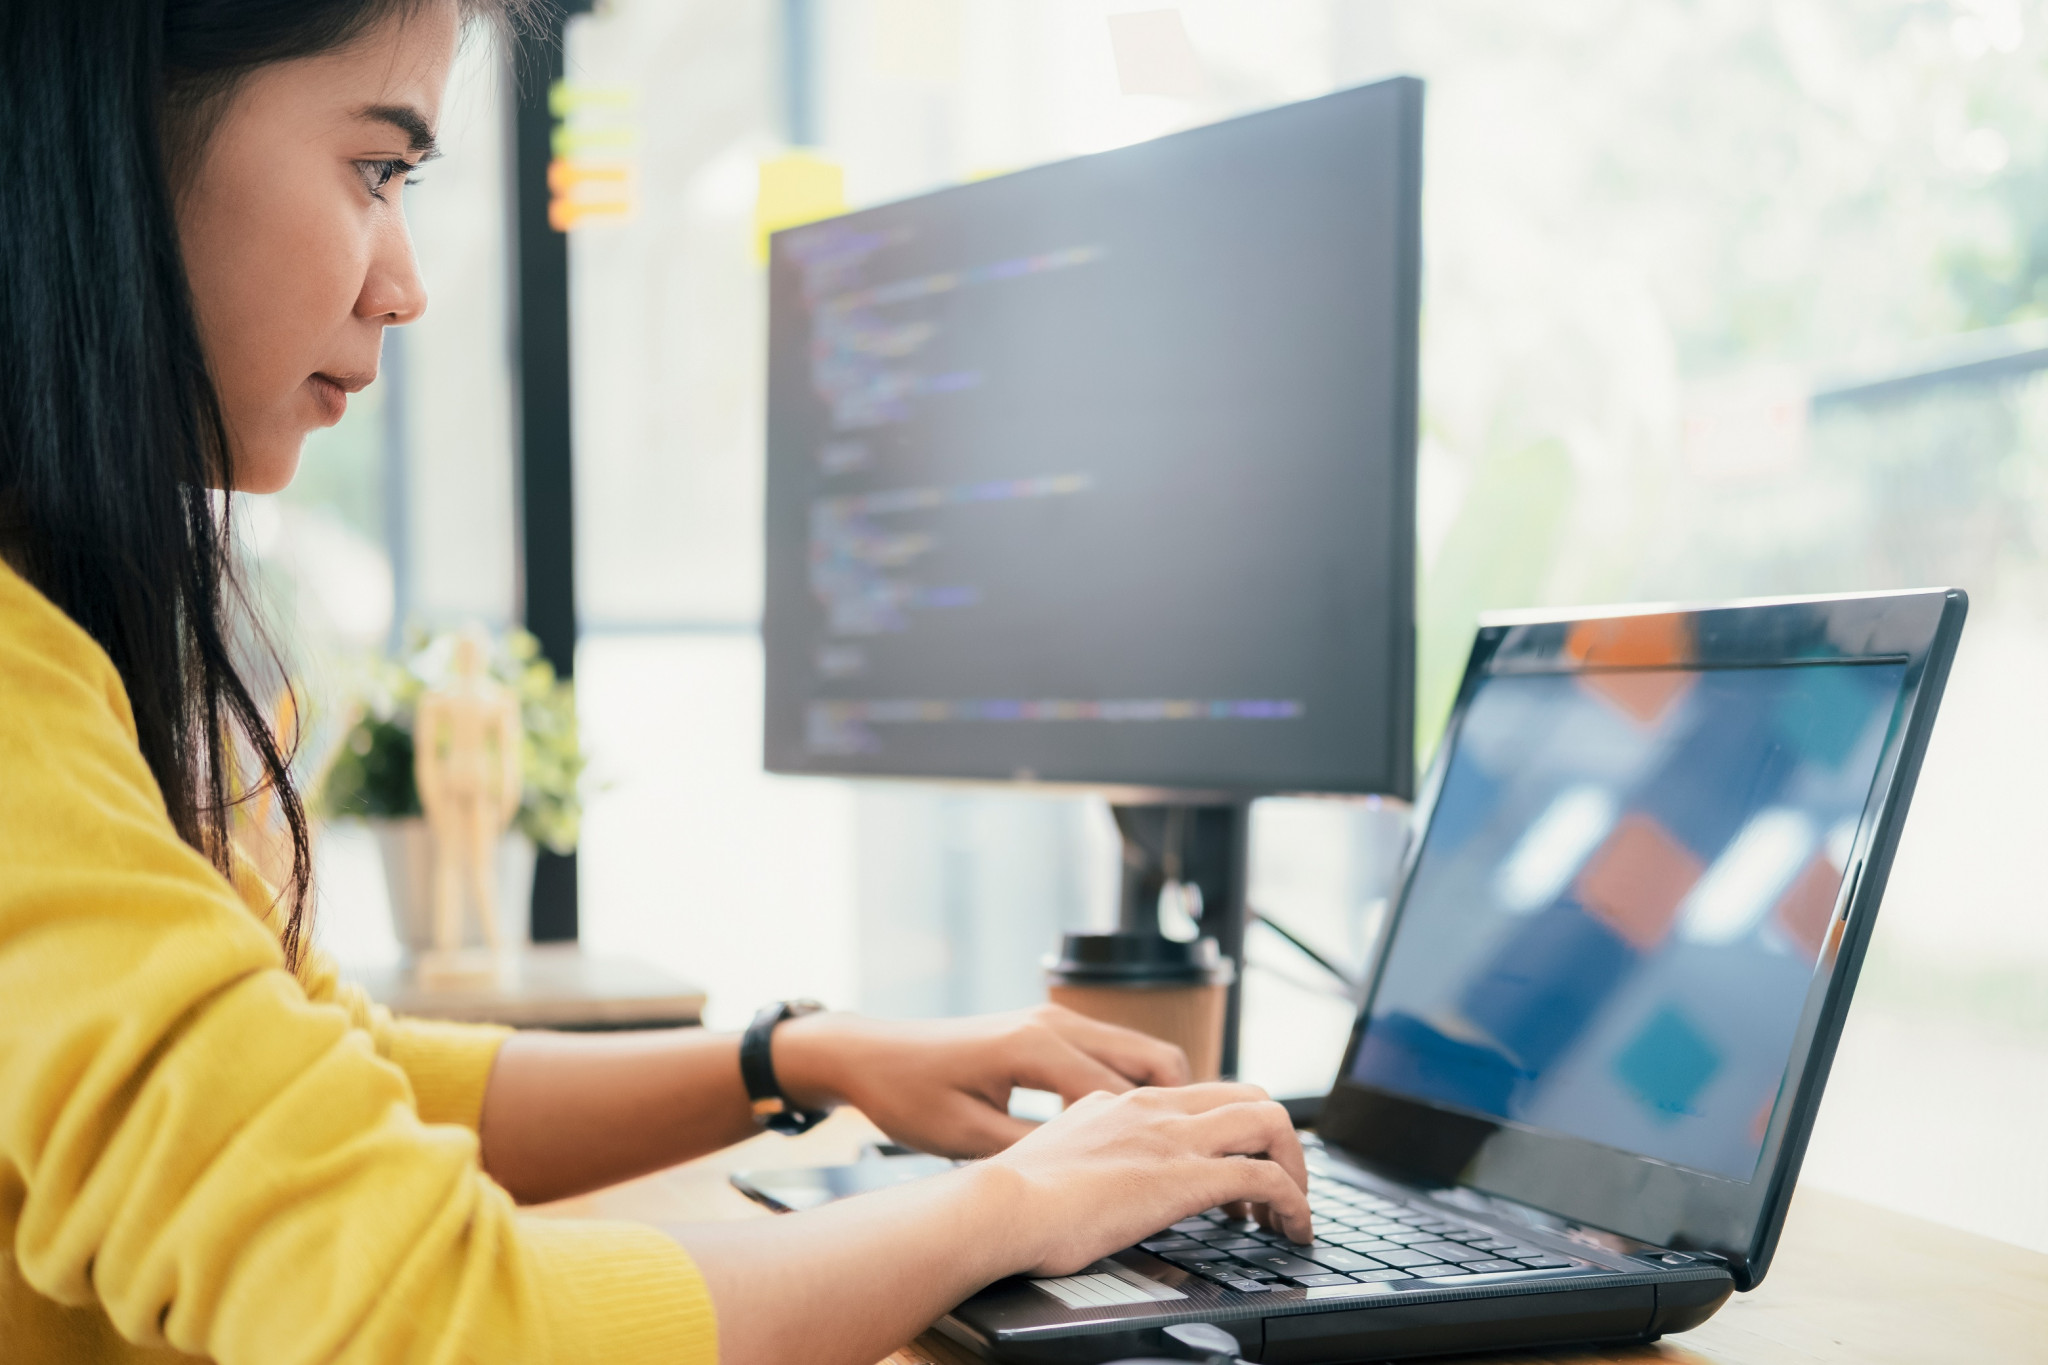 Why become a Software Engineer